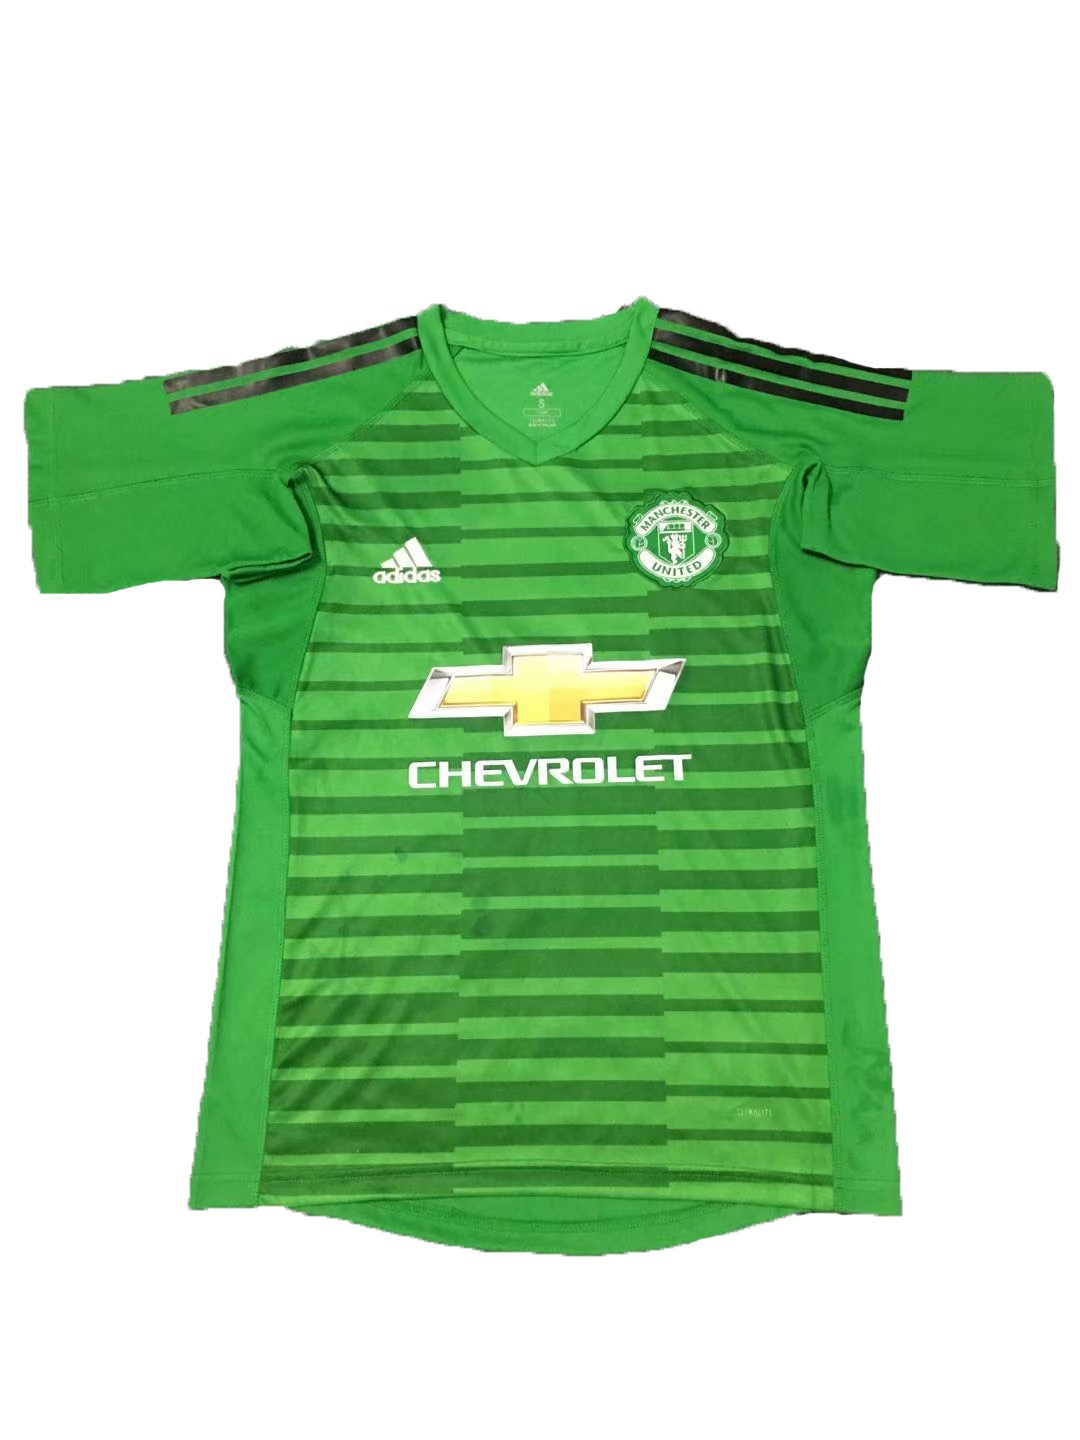 Manchester United Green Jacket Manchester United Green Goalkeeper Kit 2018 2019 Manchester United Green Goalkeeper Soccer Jerse